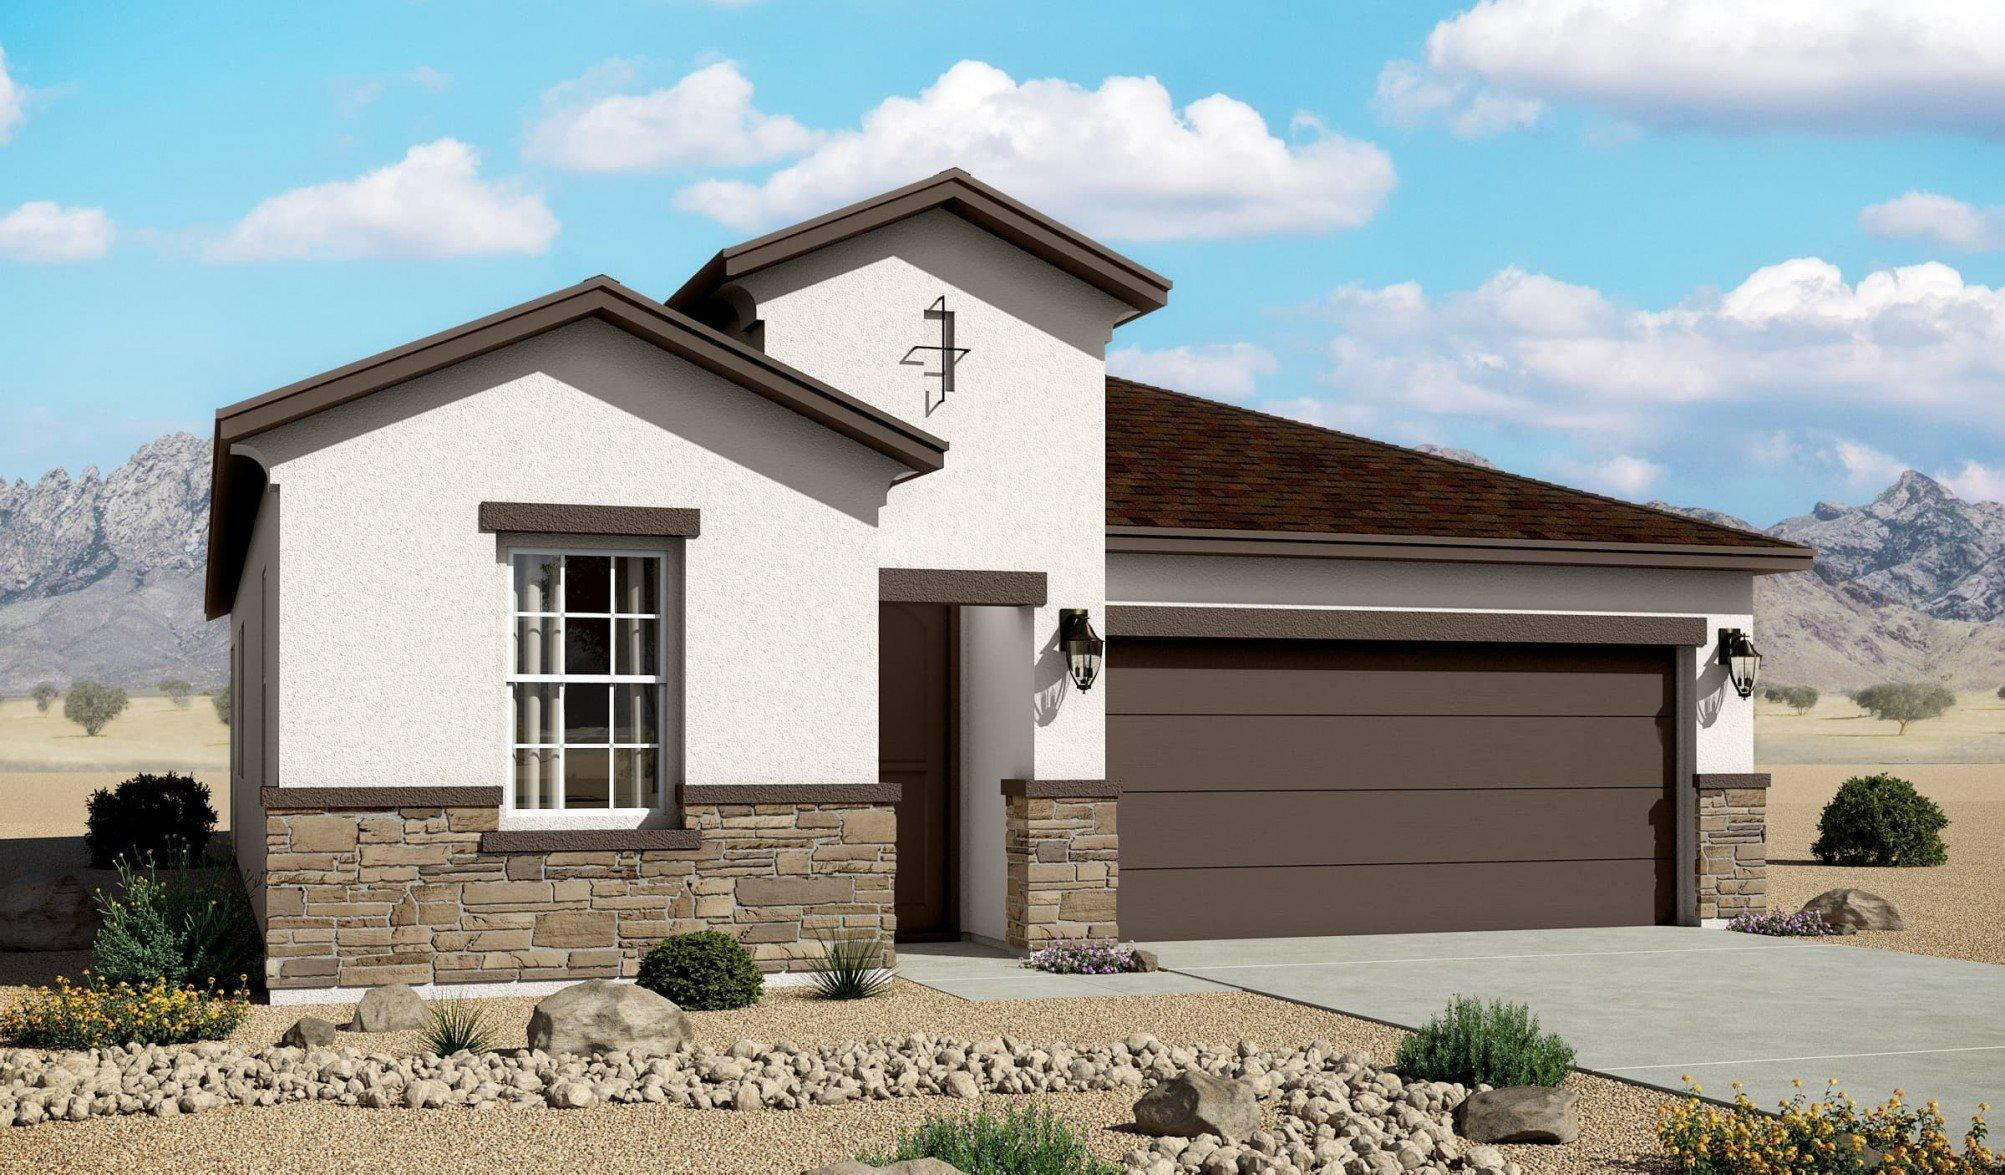 Estimated completion March 2021  Beautiful Hakes Brothers brand new home in Valle Prado that features 1752 sq ft with 4 bedrooms and large great room with beautiful features throughout! Gourmet kitchen with pot filler!